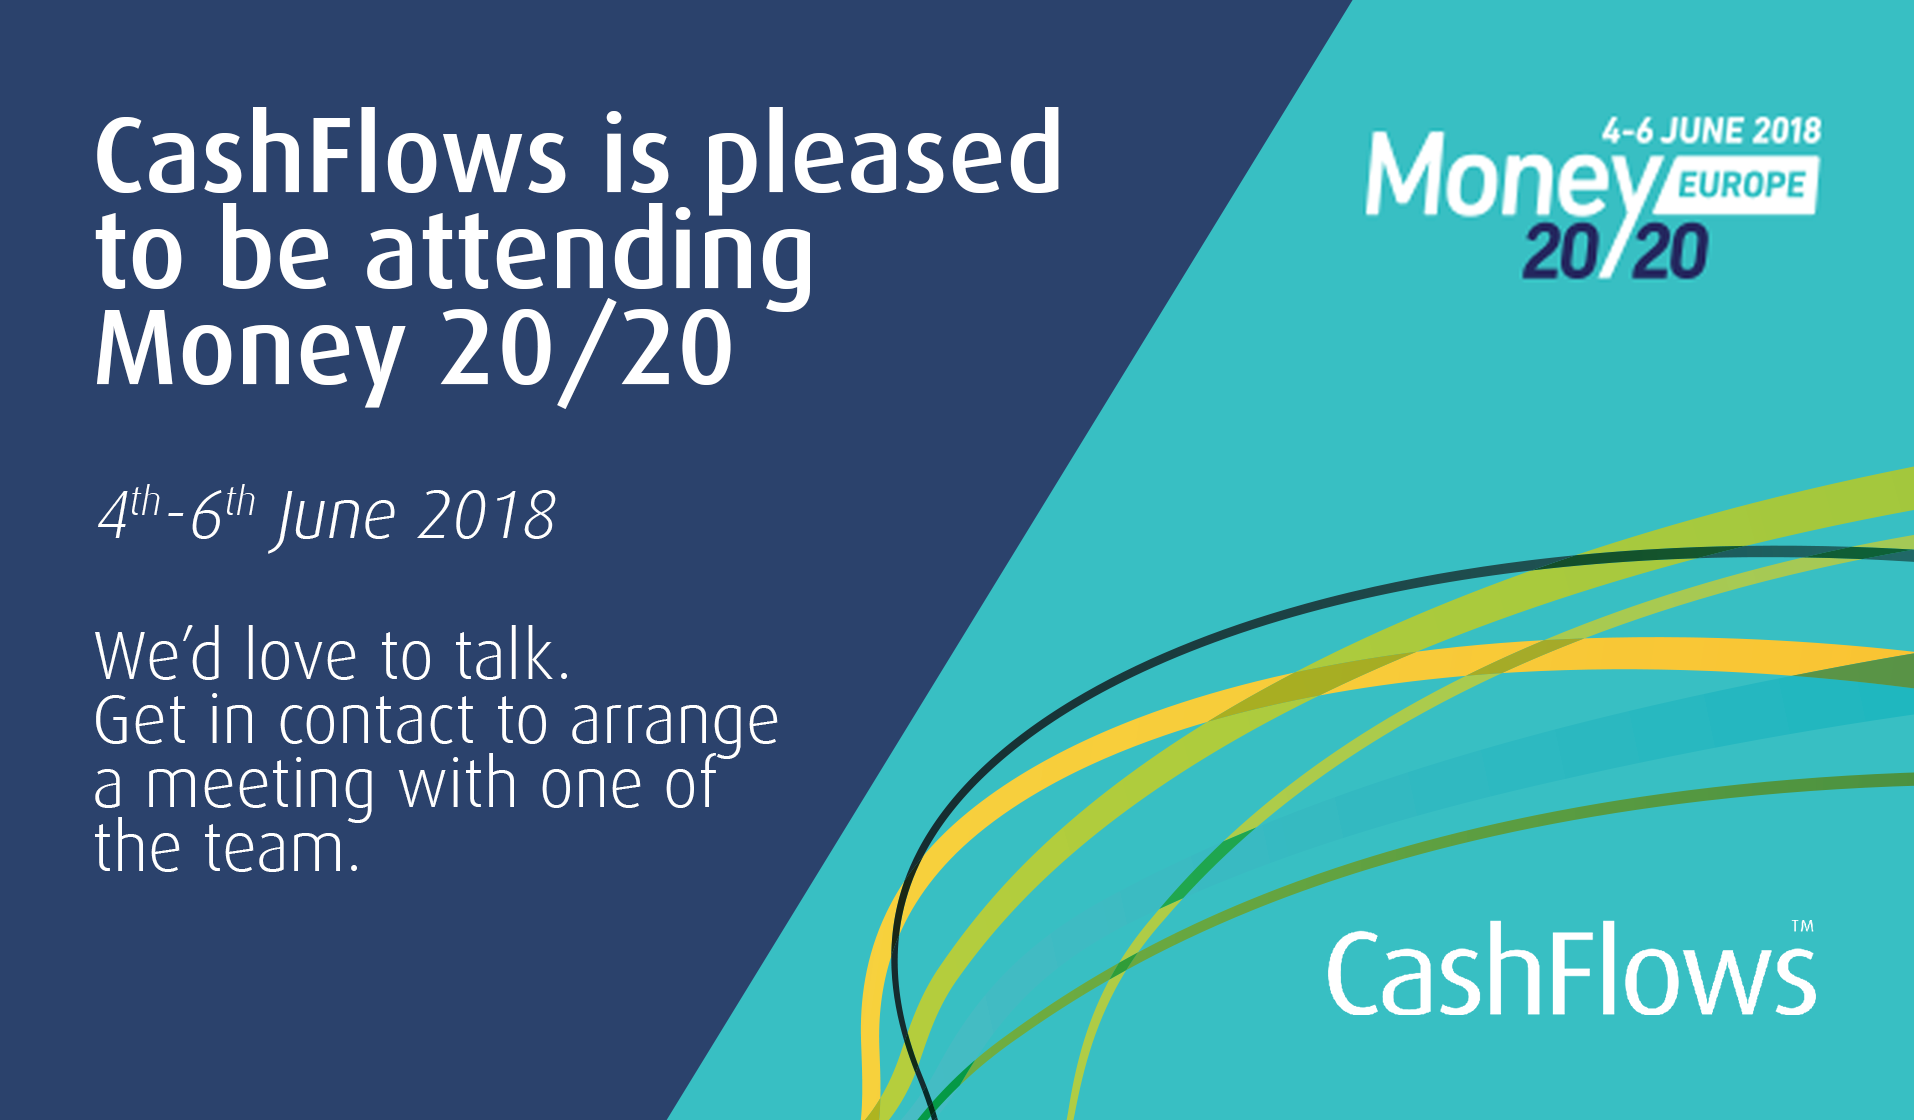 CashFlows: pleased to be attending Money 20/20